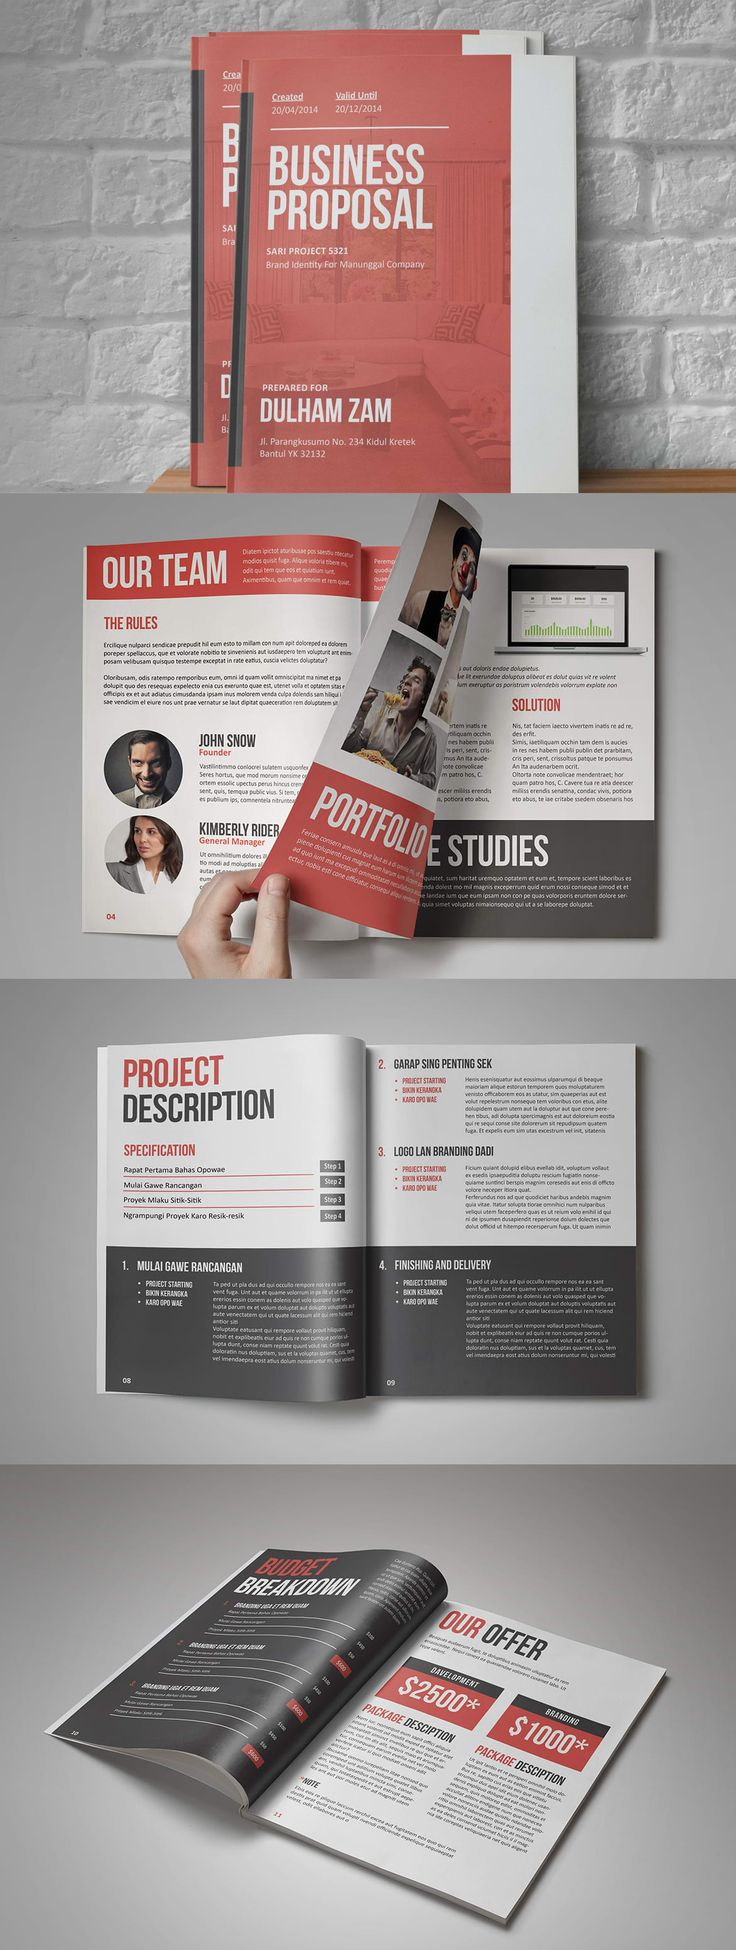 Sari Business Proposal Template InDesign INDD - 14 Pages